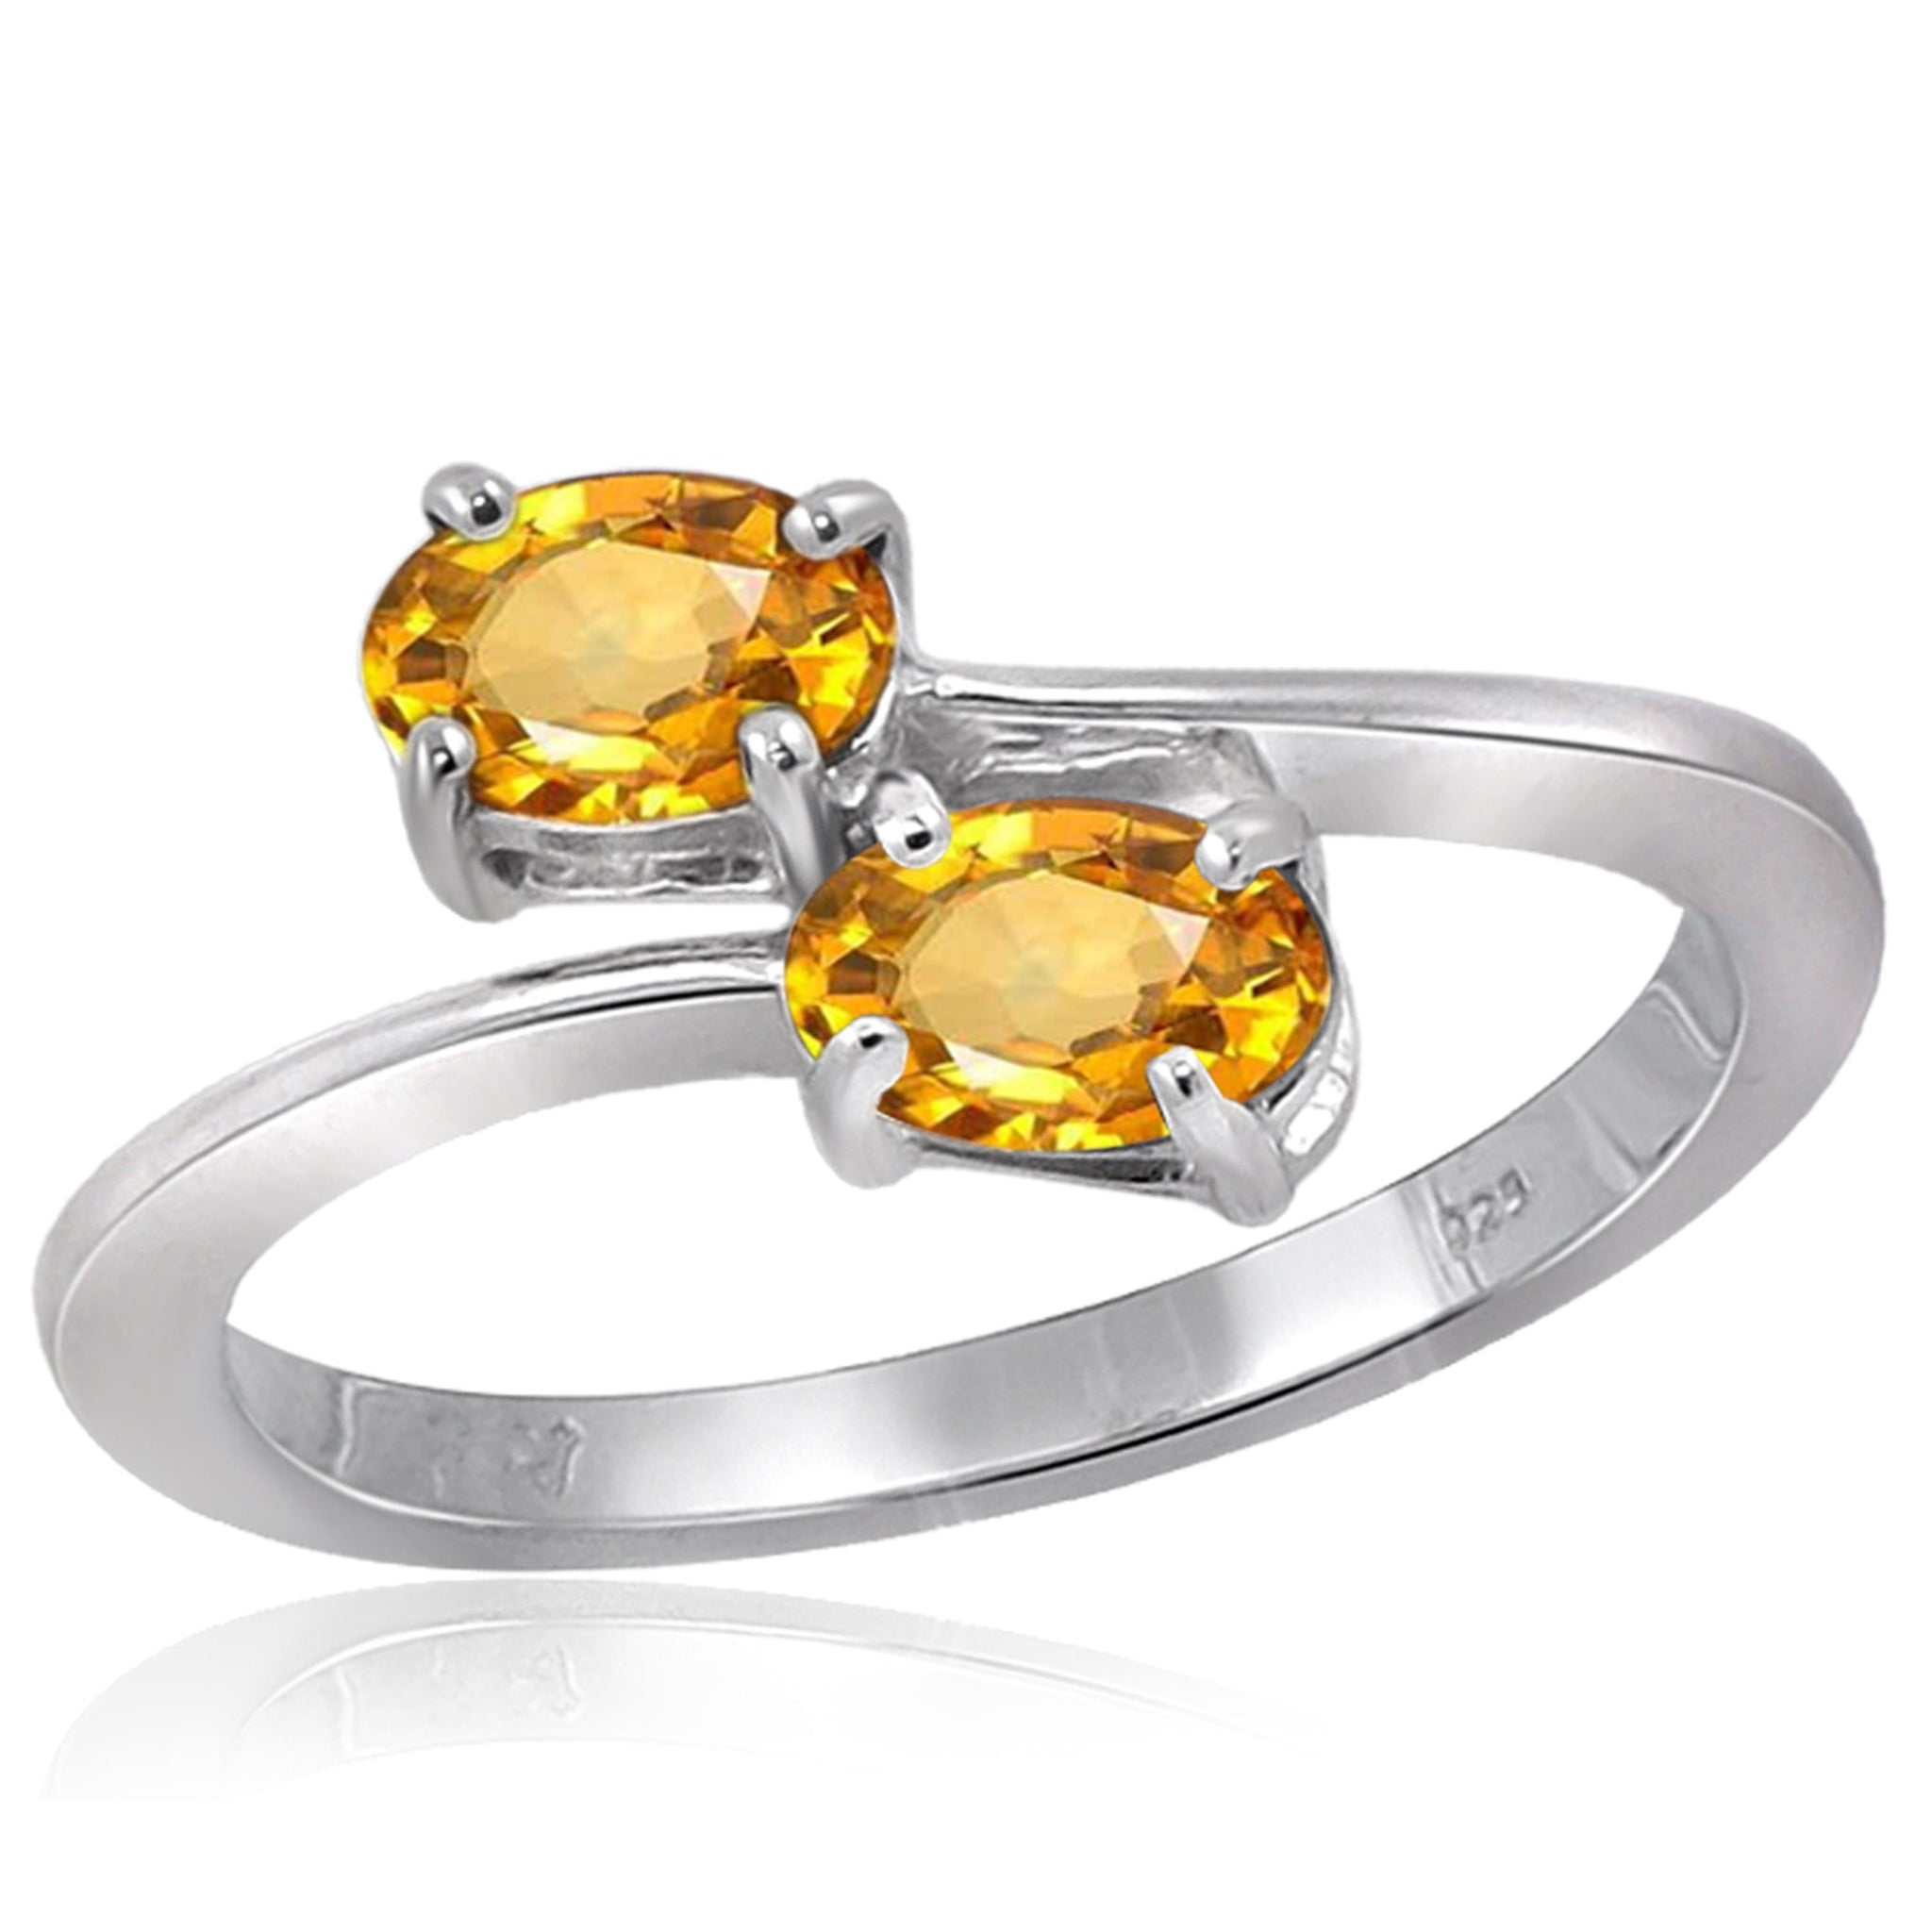 JewelersClub 1.00 Carat T.G.W. Citrine Sterling Silver Two Stone Ring - Assorted Colors